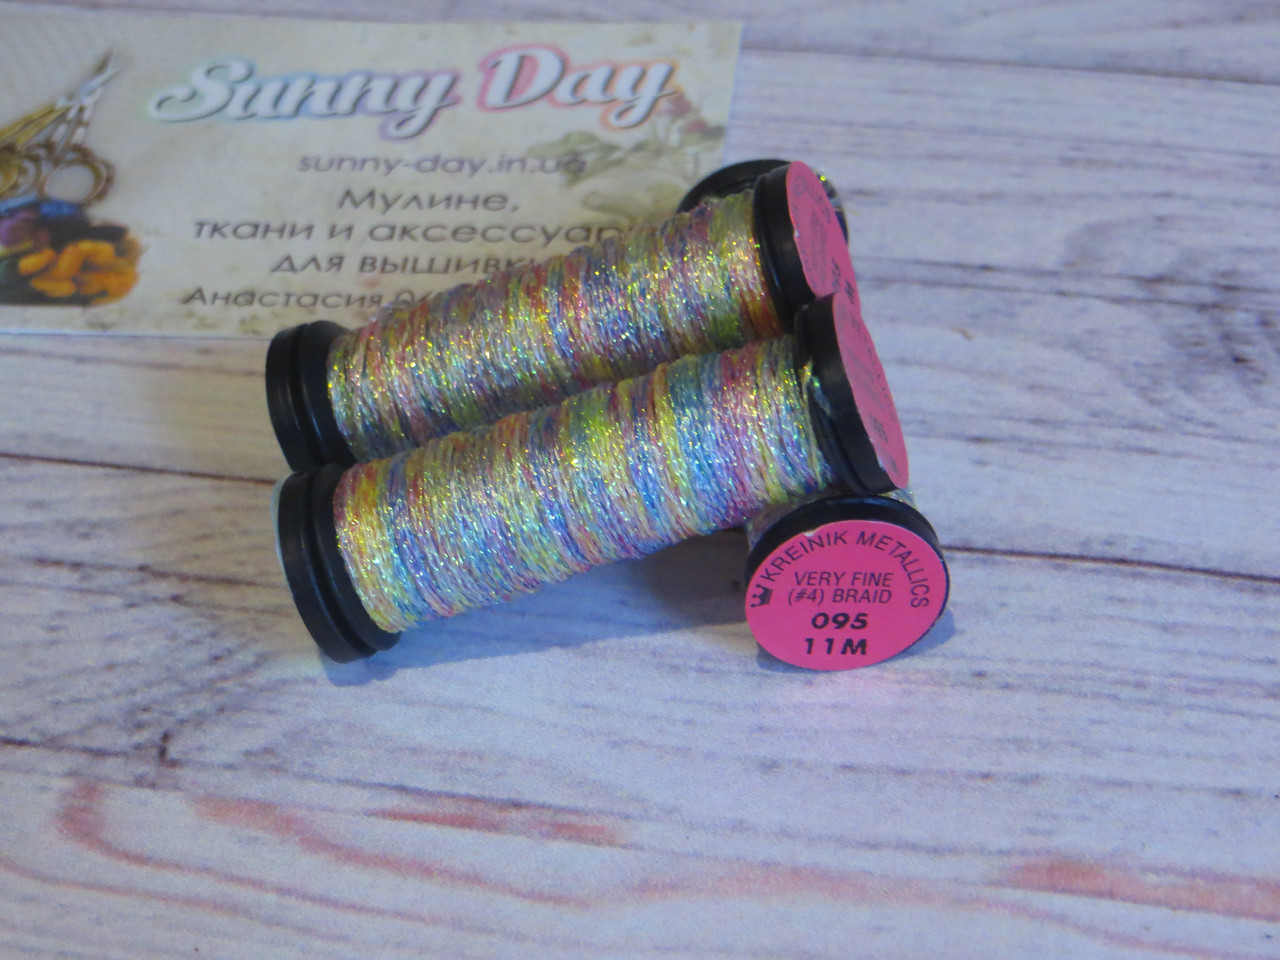 Kreinik Very Fine #4 Braid (11 m), цвет 095